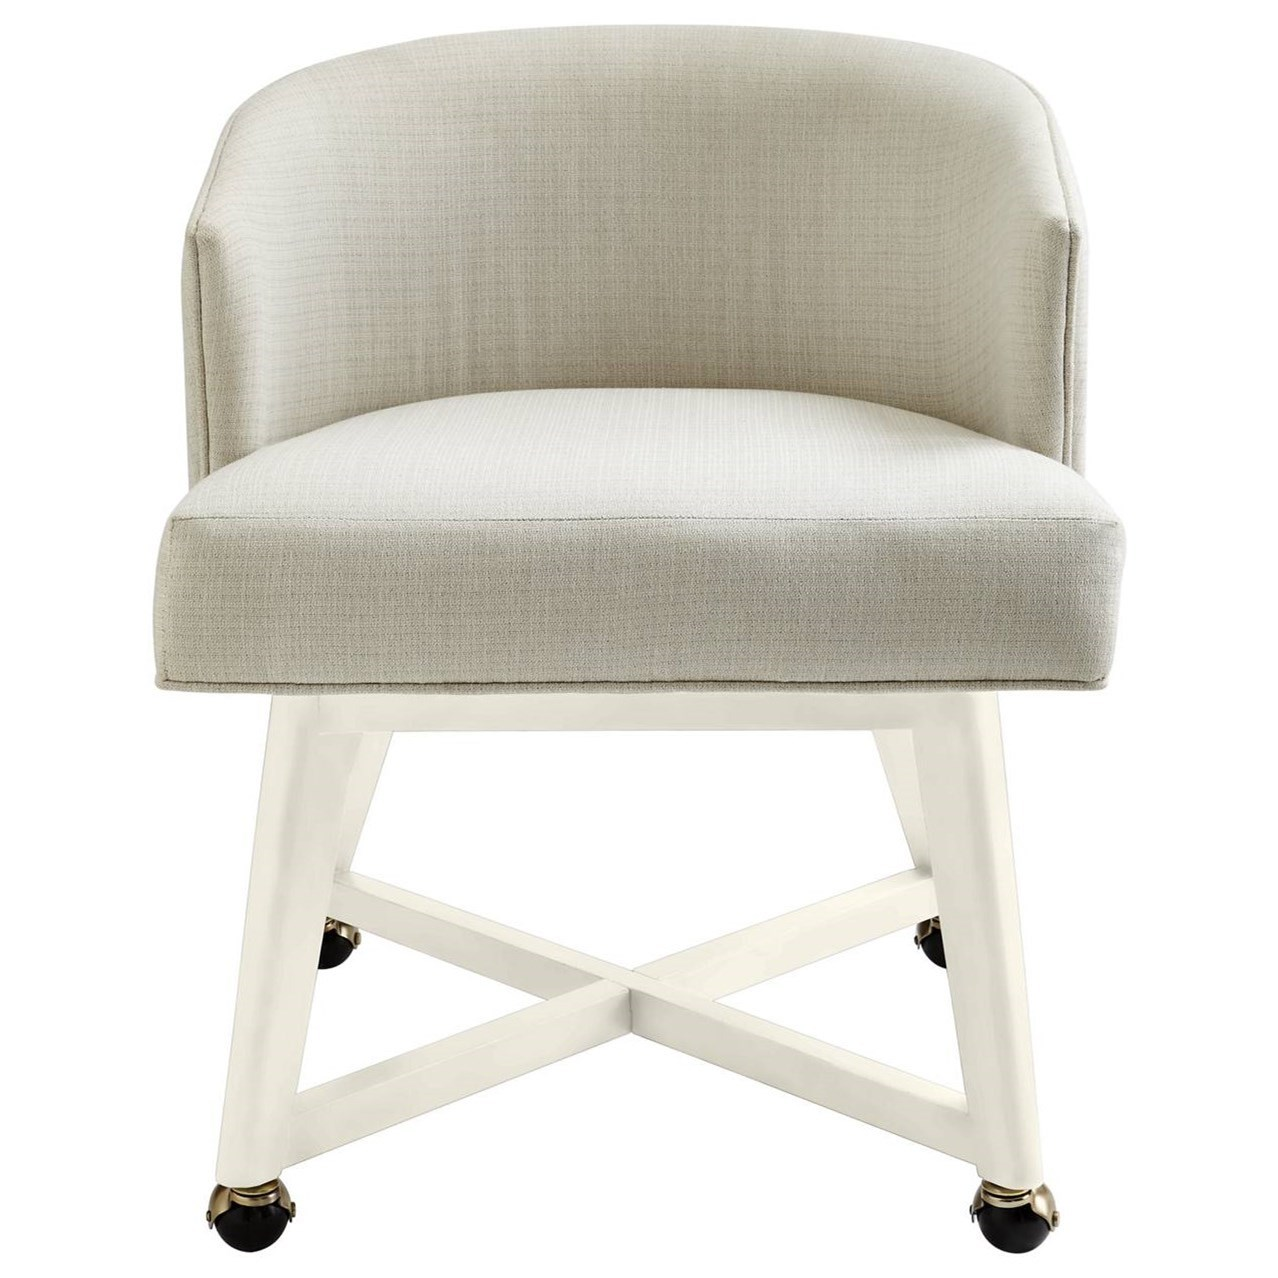 Stanley Furniture Coastal Living Oasis Carlyle Club Chair - Item Number: 527-21-69